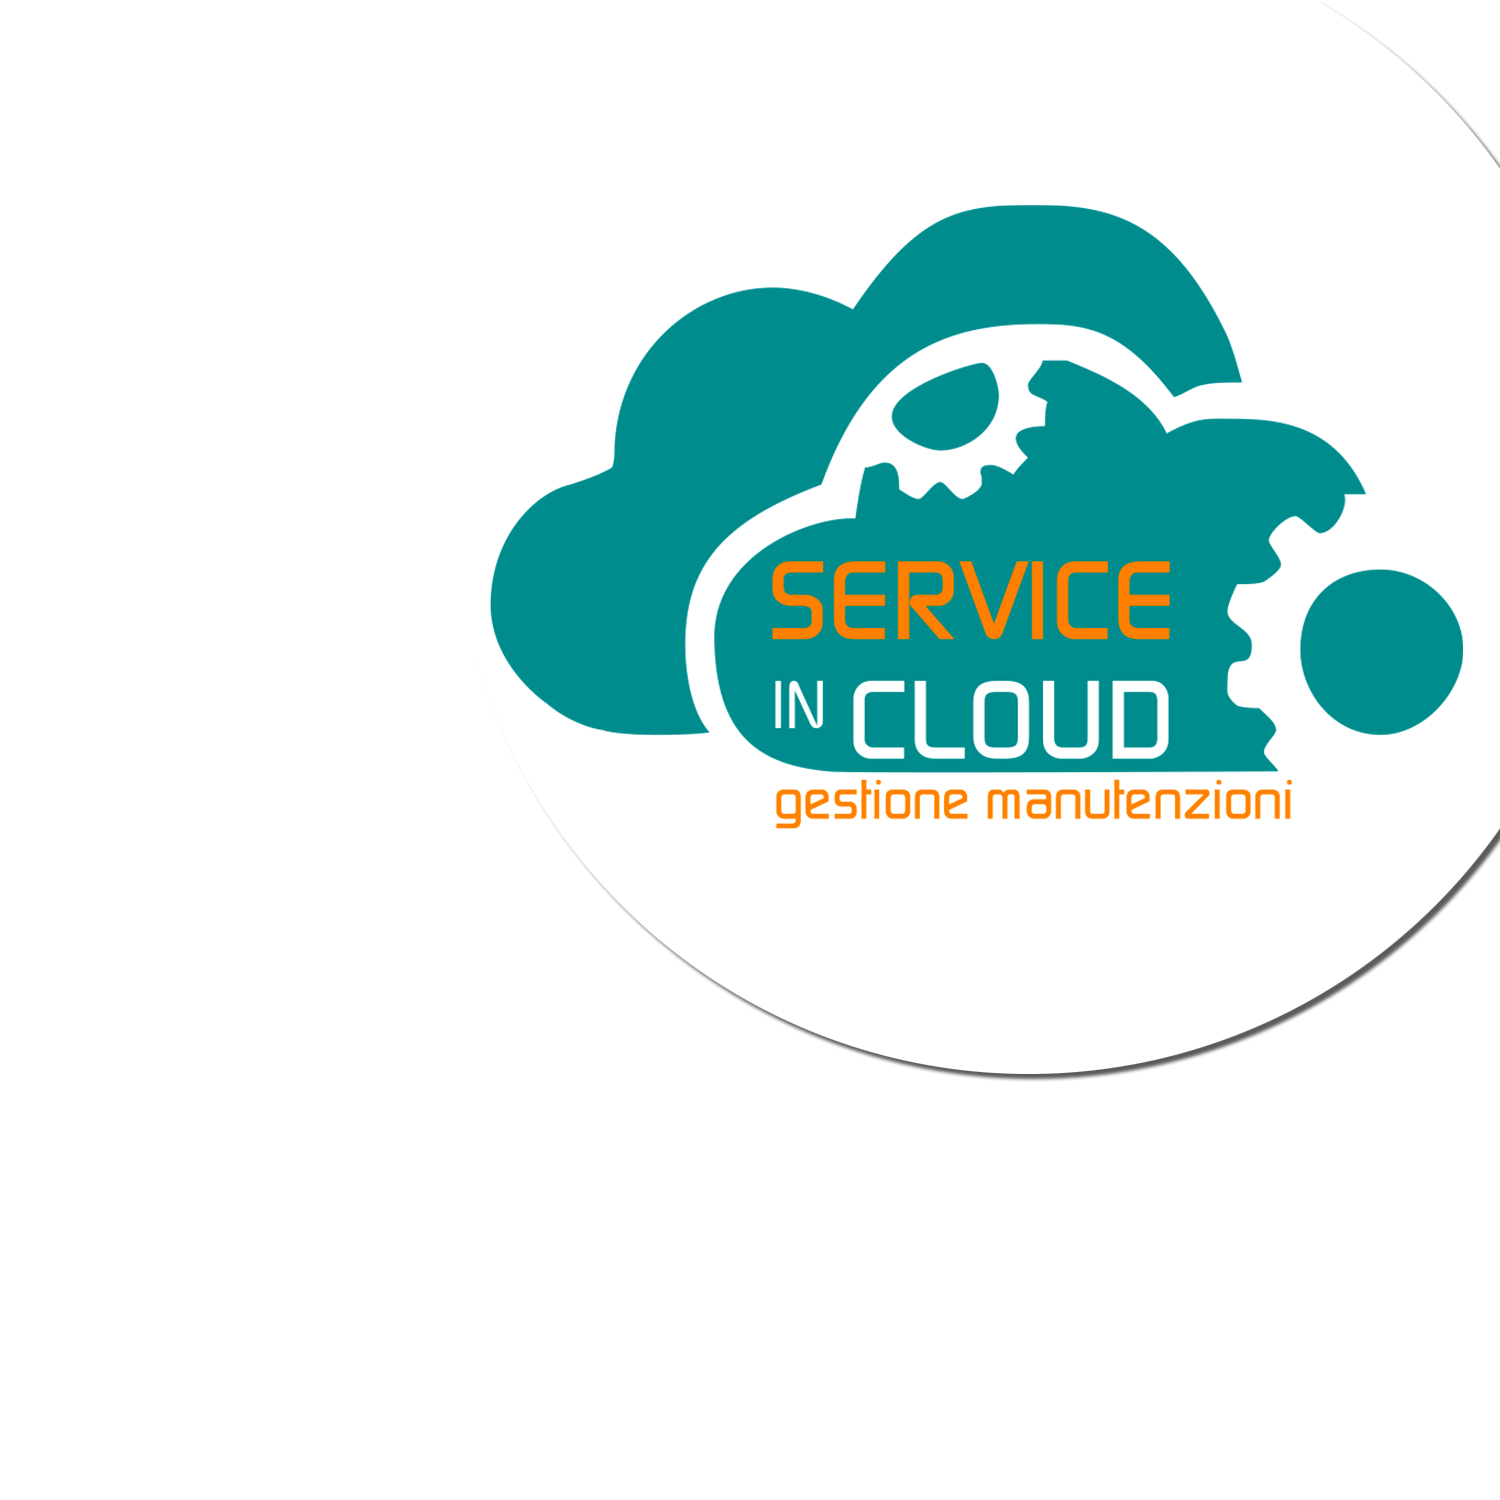 Service in Cloud - Antares 3000 Srl